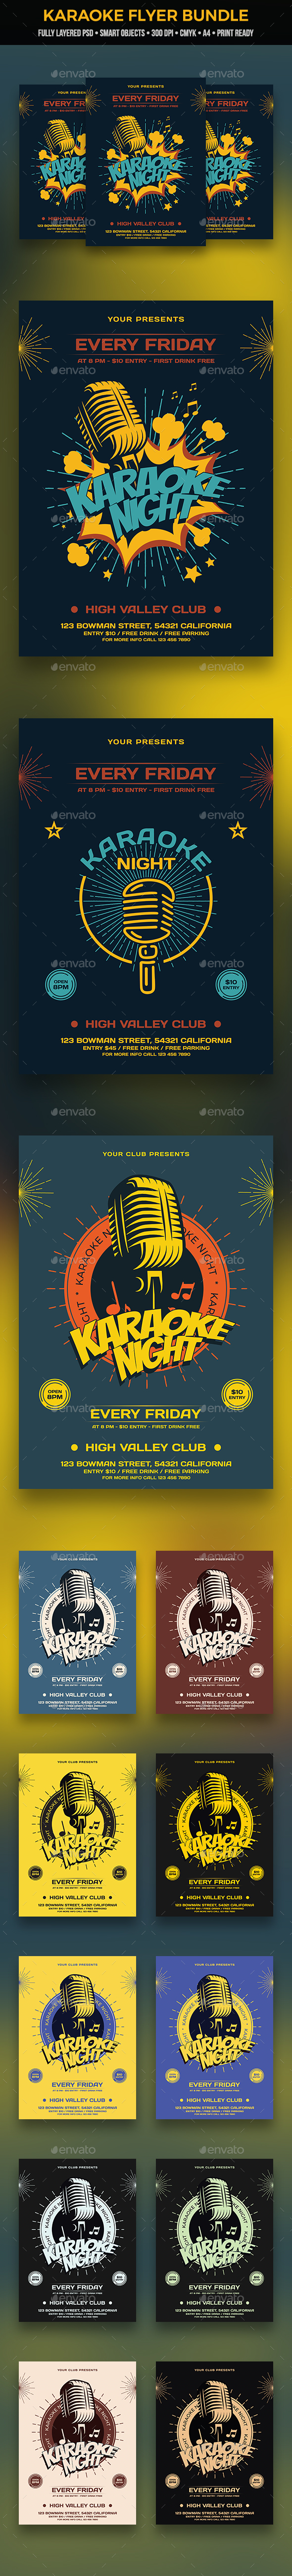 Karaoke Flyer Bundle - Clubs & Parties Events